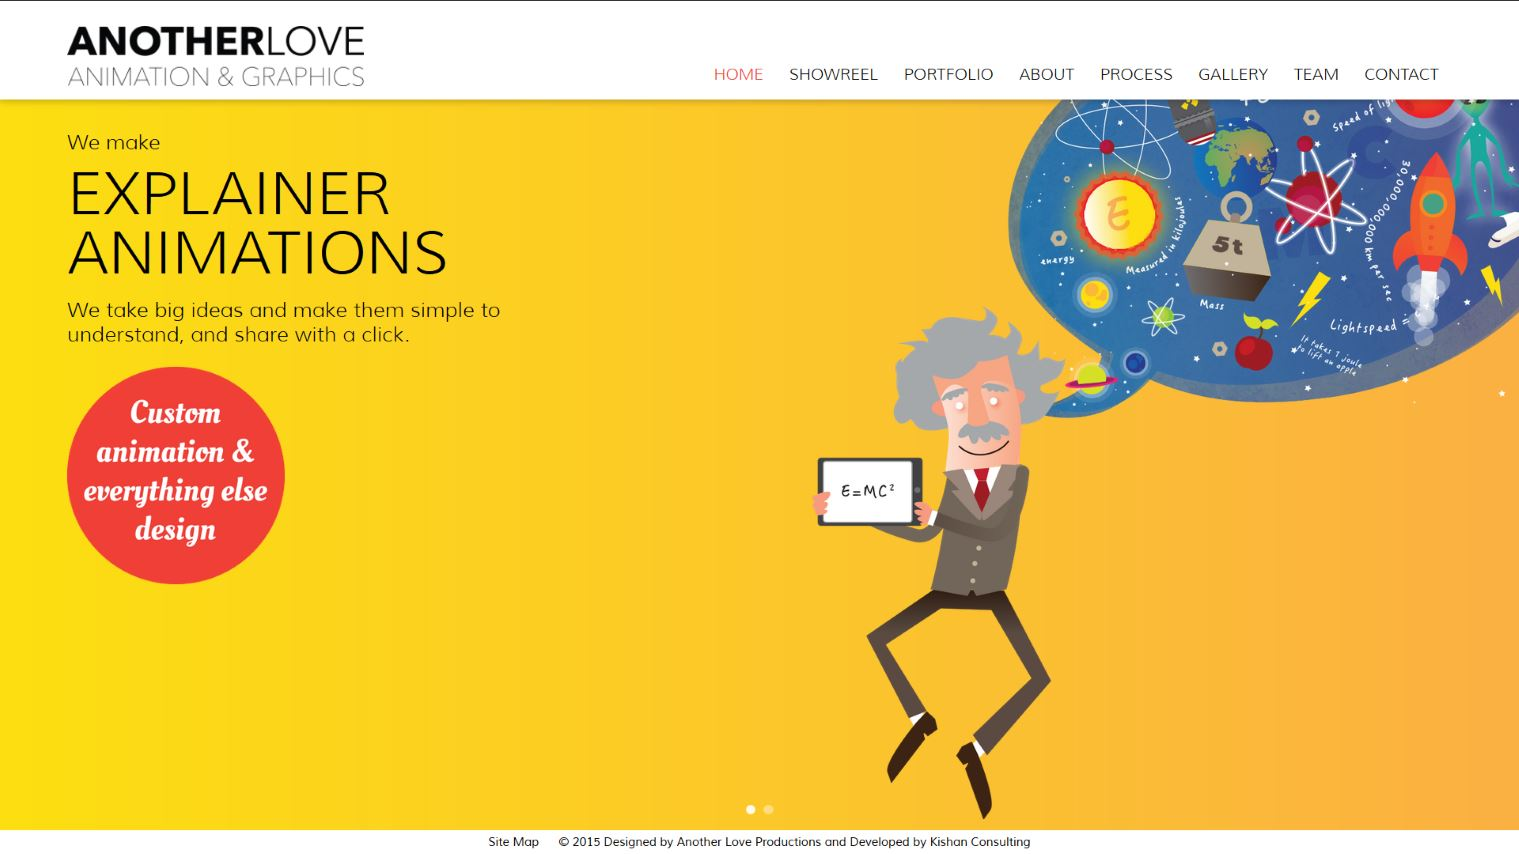 Another Love Studio - Home Page